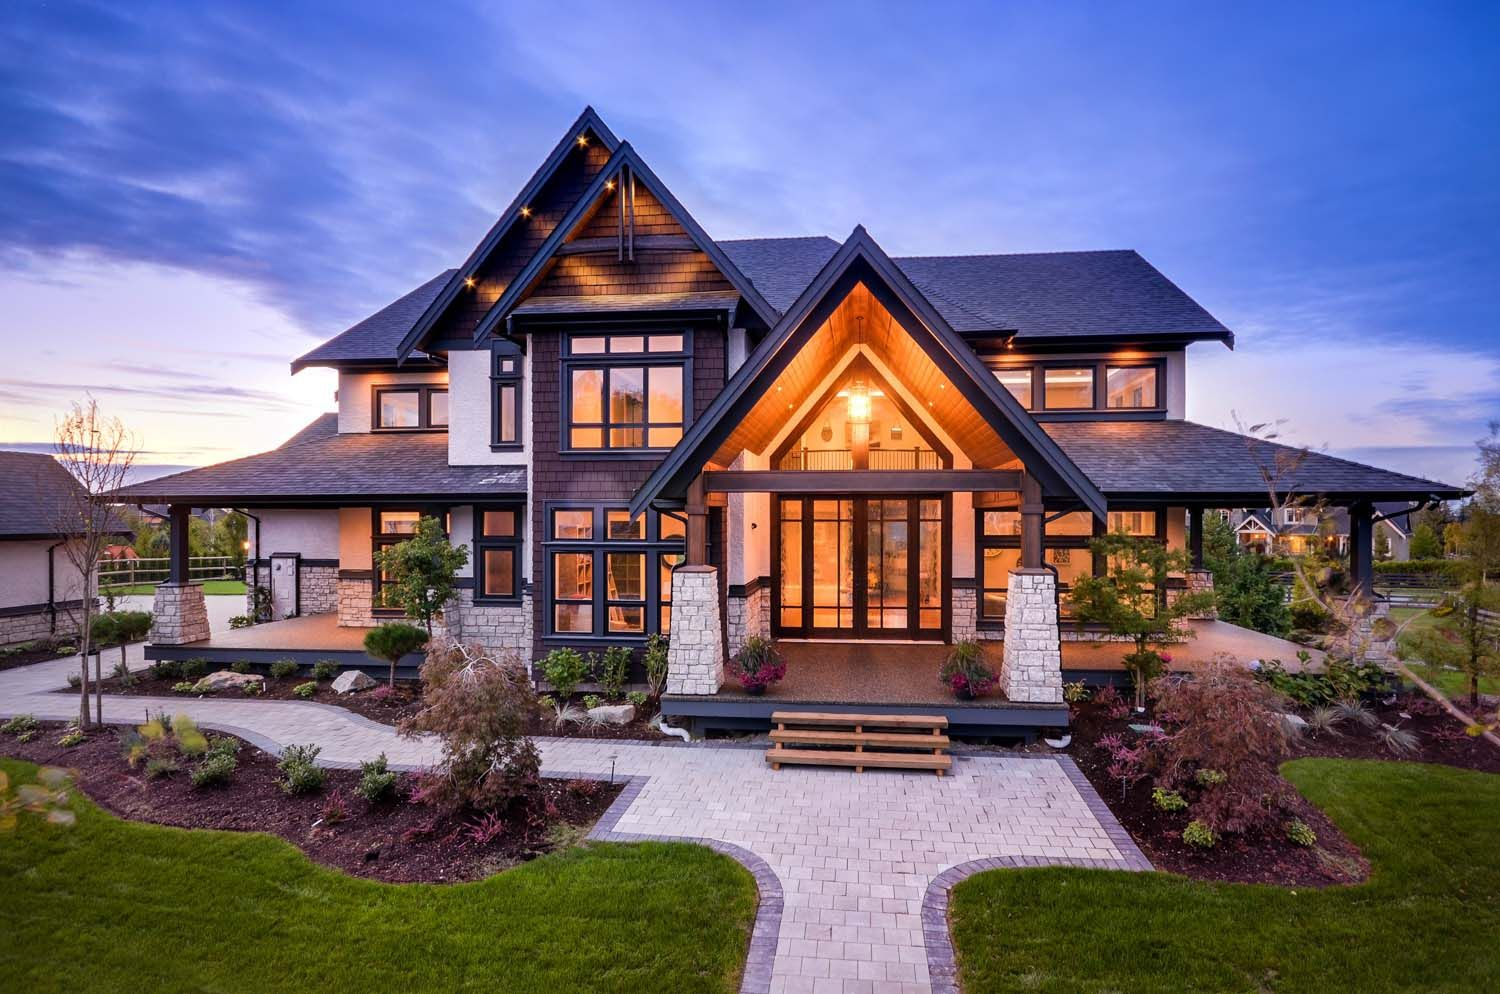 Transitional Style Home In British Columbia Showcases Gorgeous